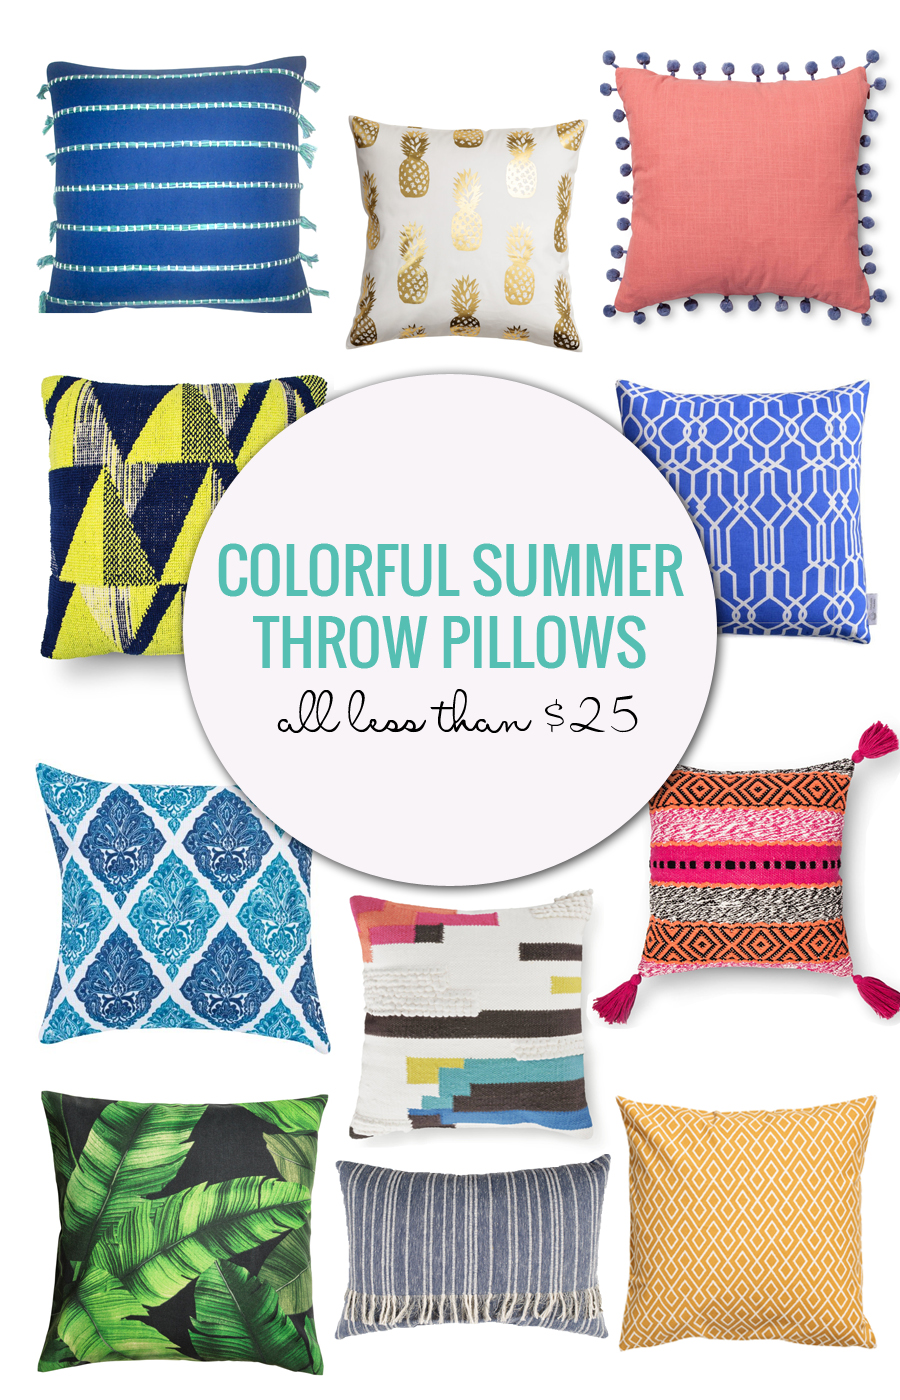 Remodelaholic Colorful Summer Throw Pillow Under $25